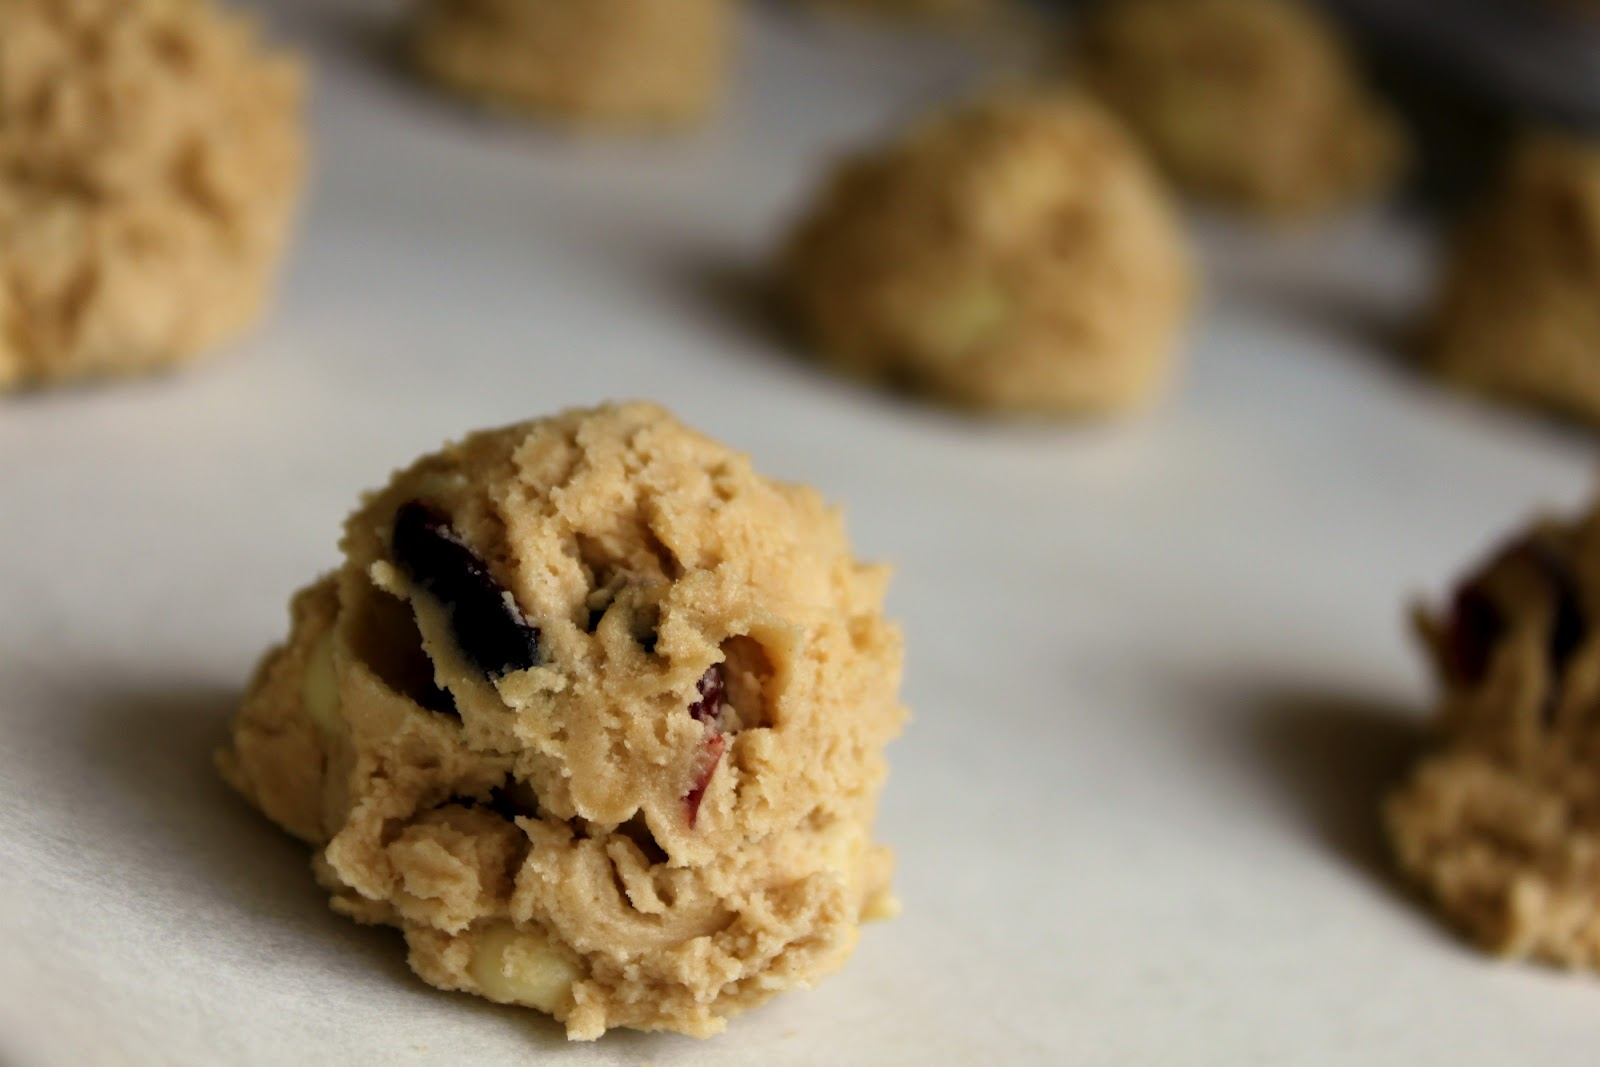 ... chilled the dough; then scooped the cookie dough onto parchment paper